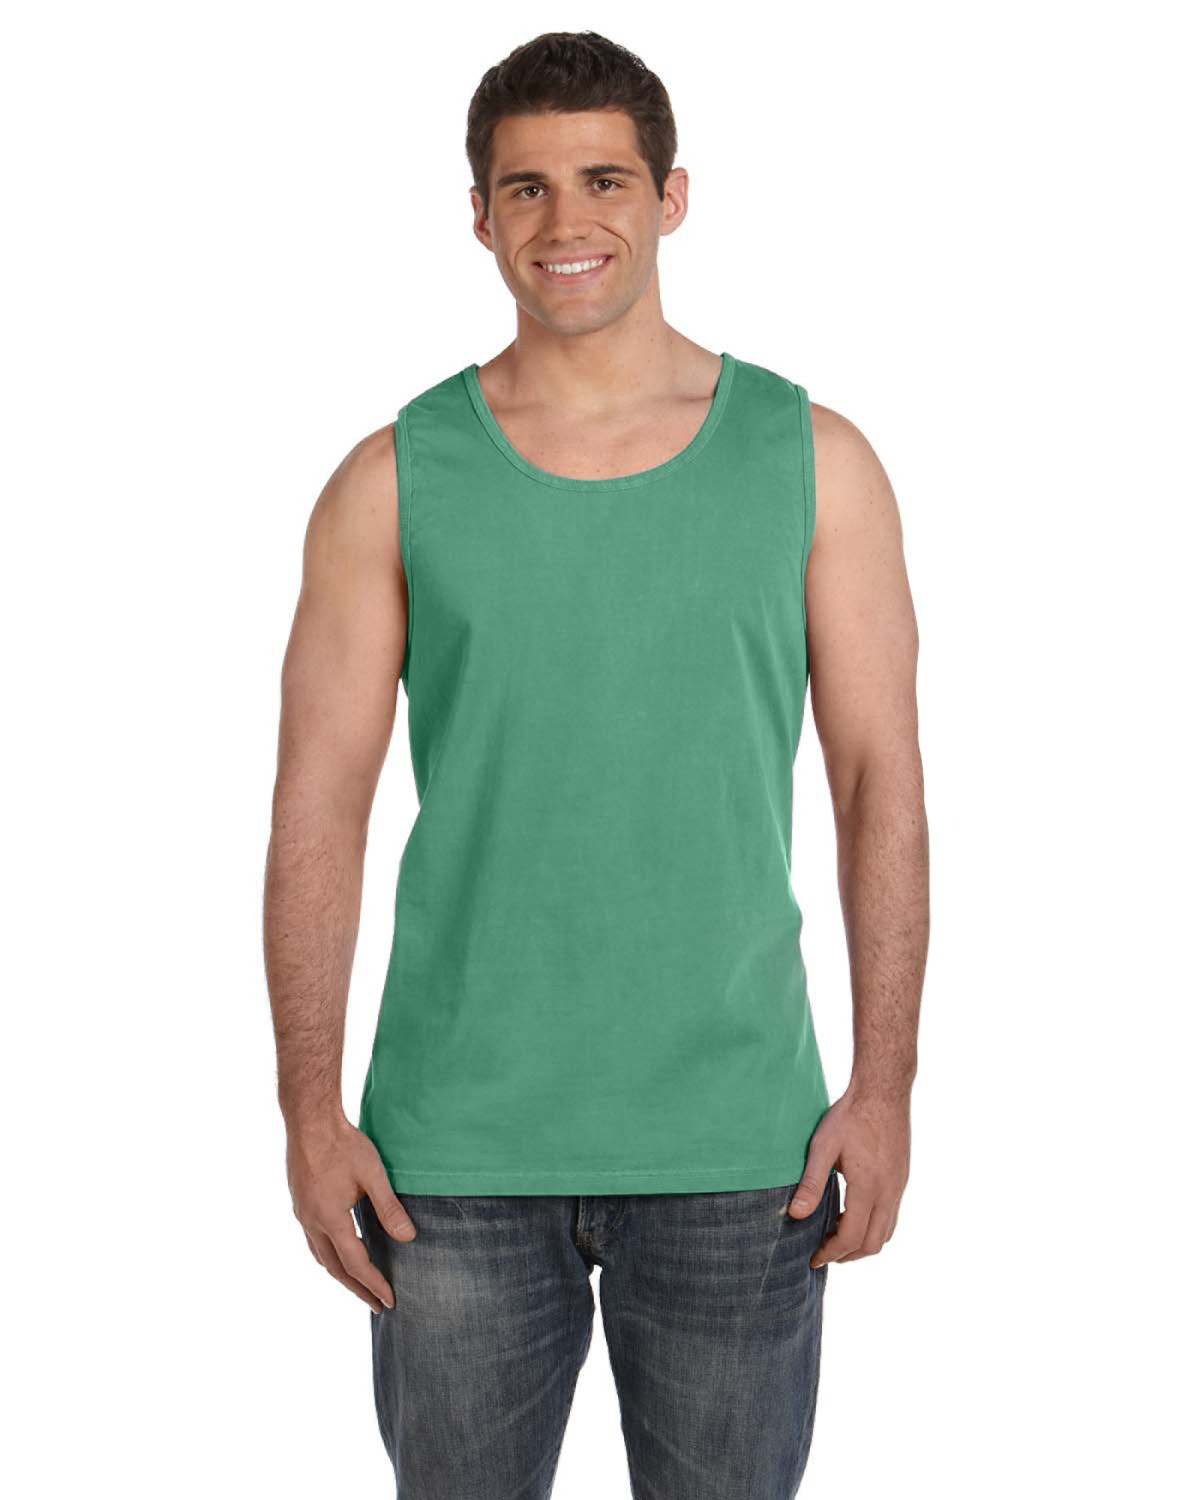 C9360 Comfort Colors ISLAND GREEN